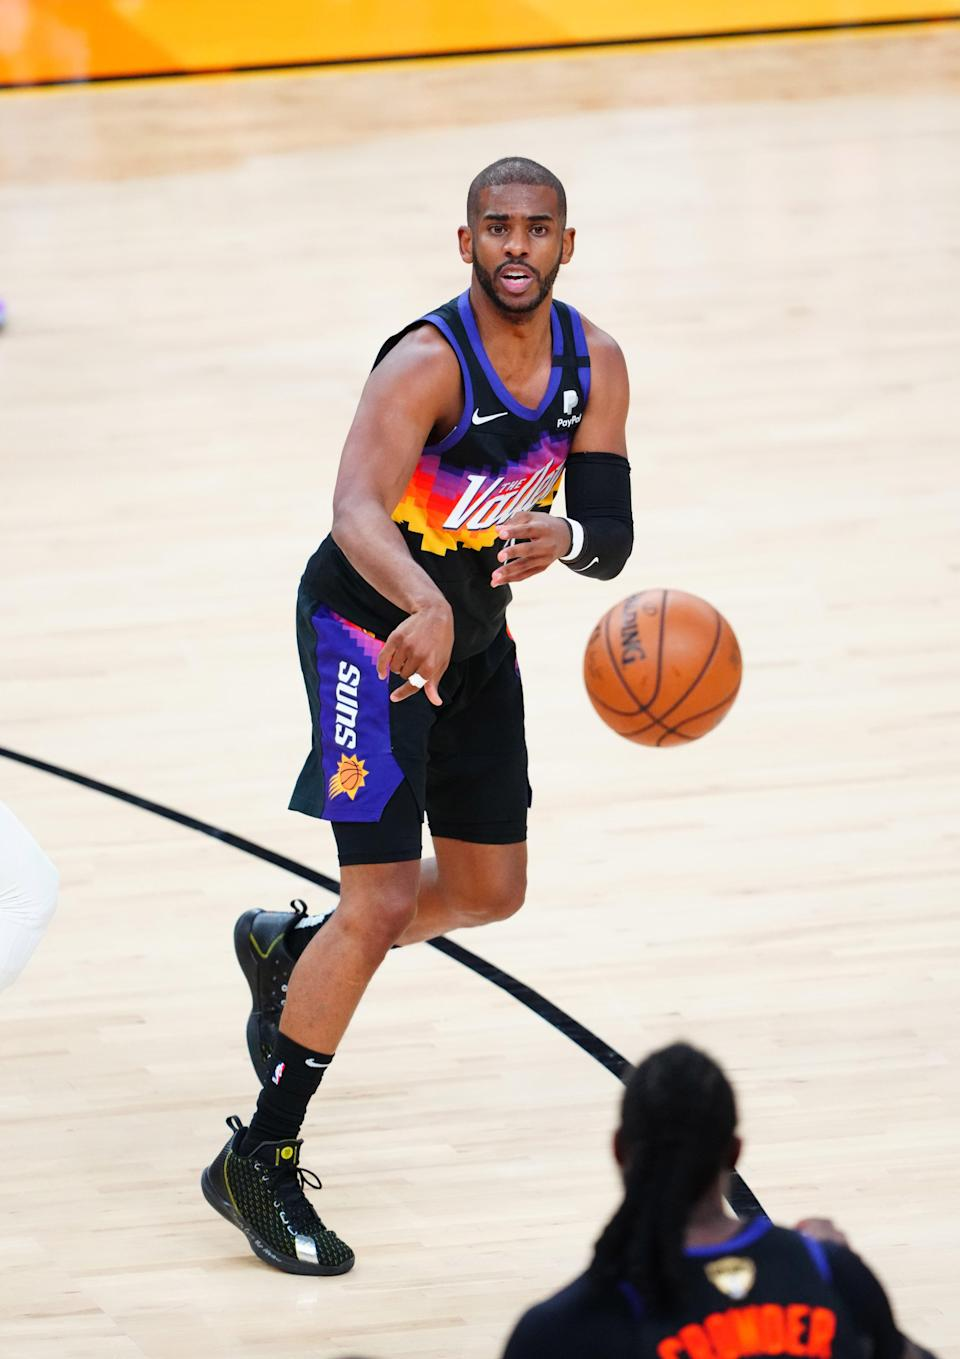 Chris Paul has played 16 NBA seasons, including one for a Phoenix Suns team that reached the Finals.